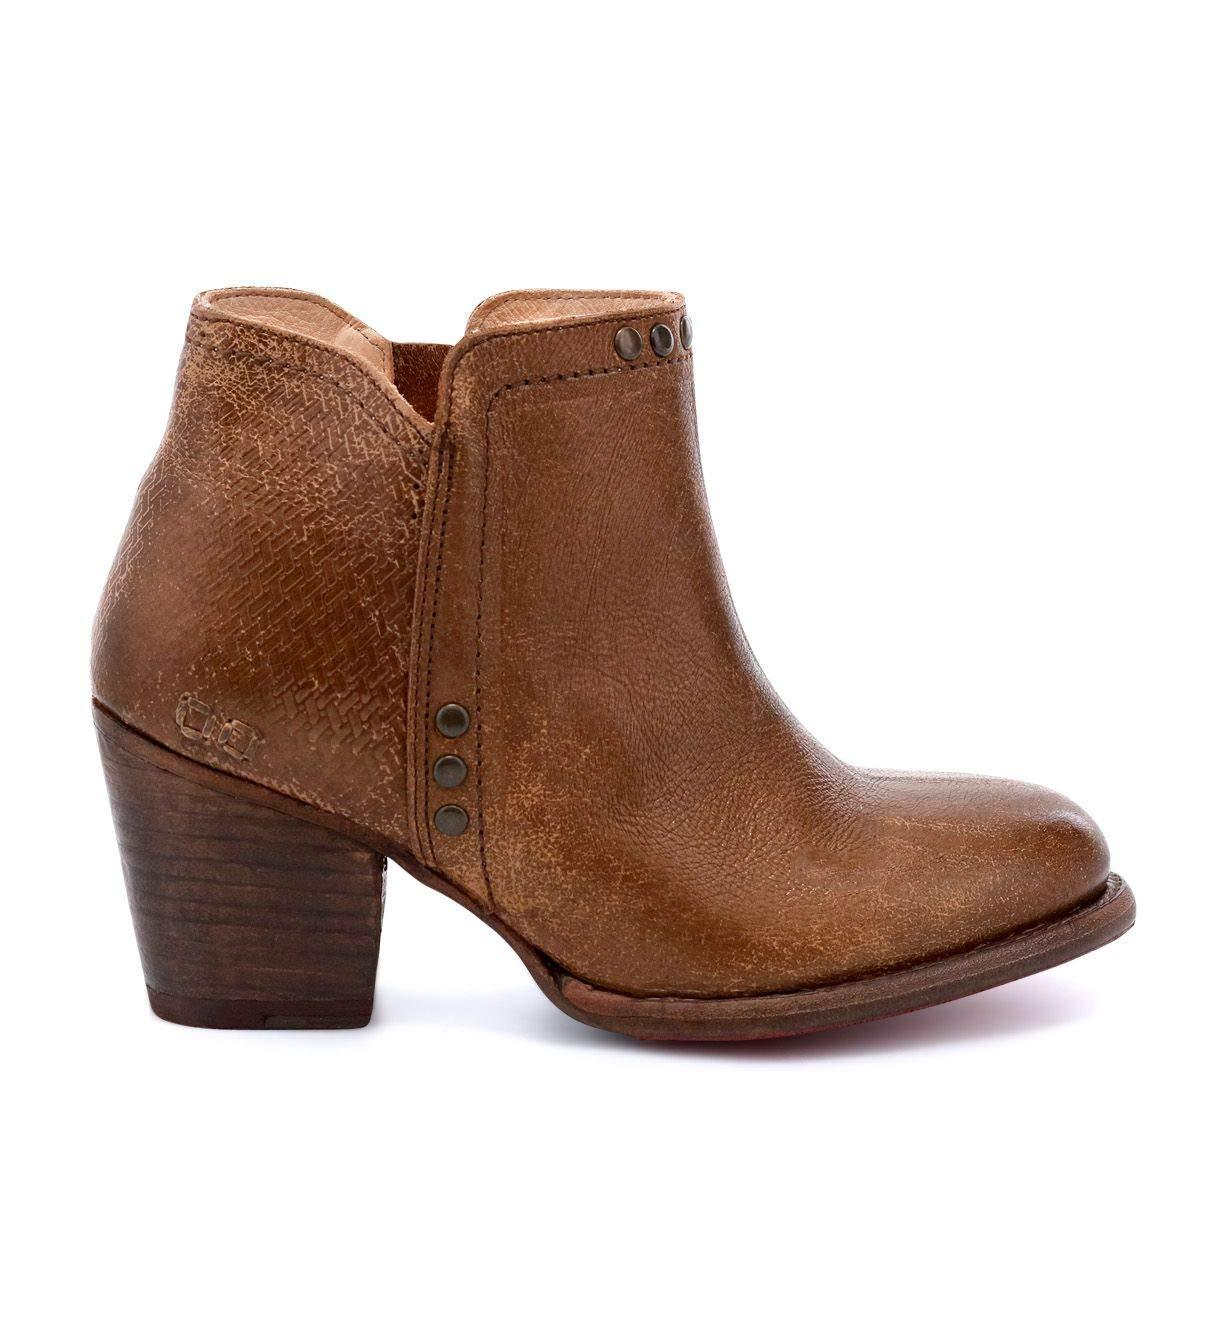 Bed|Stu Womens Yell P Leather Boot image 3